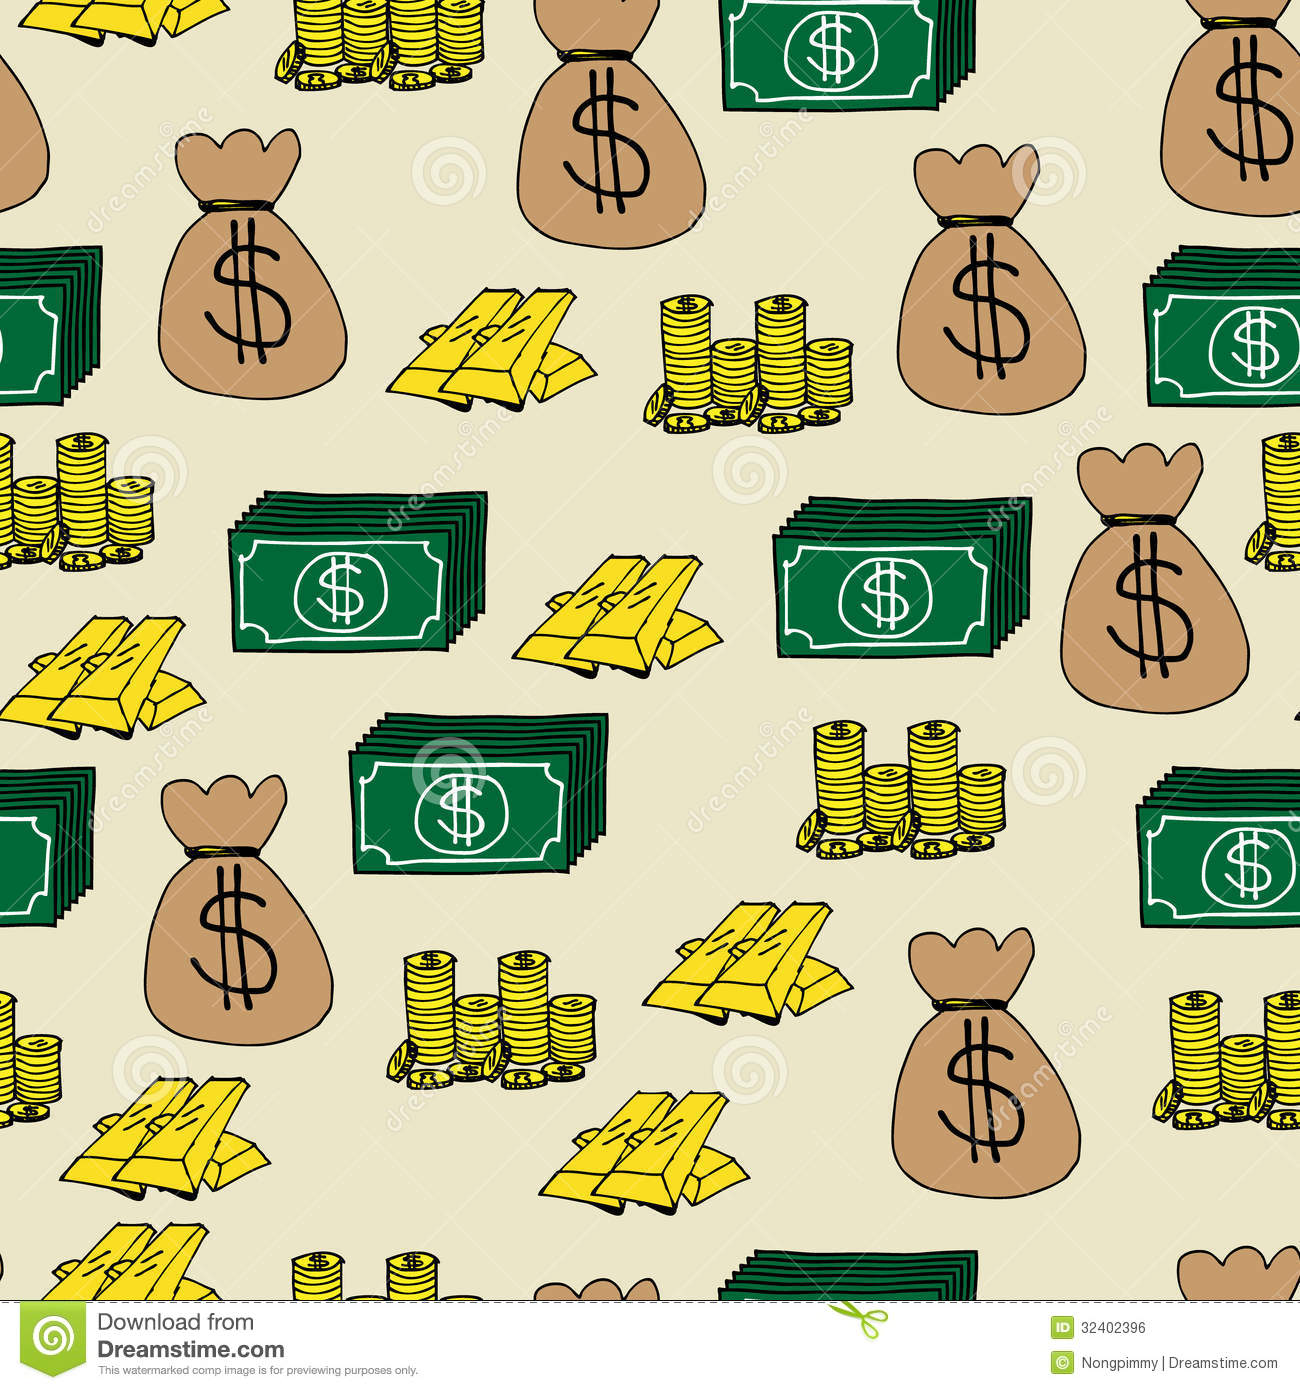 Finance Cartoons: Finance Icons Seamless Background Royalty Free Stock Image